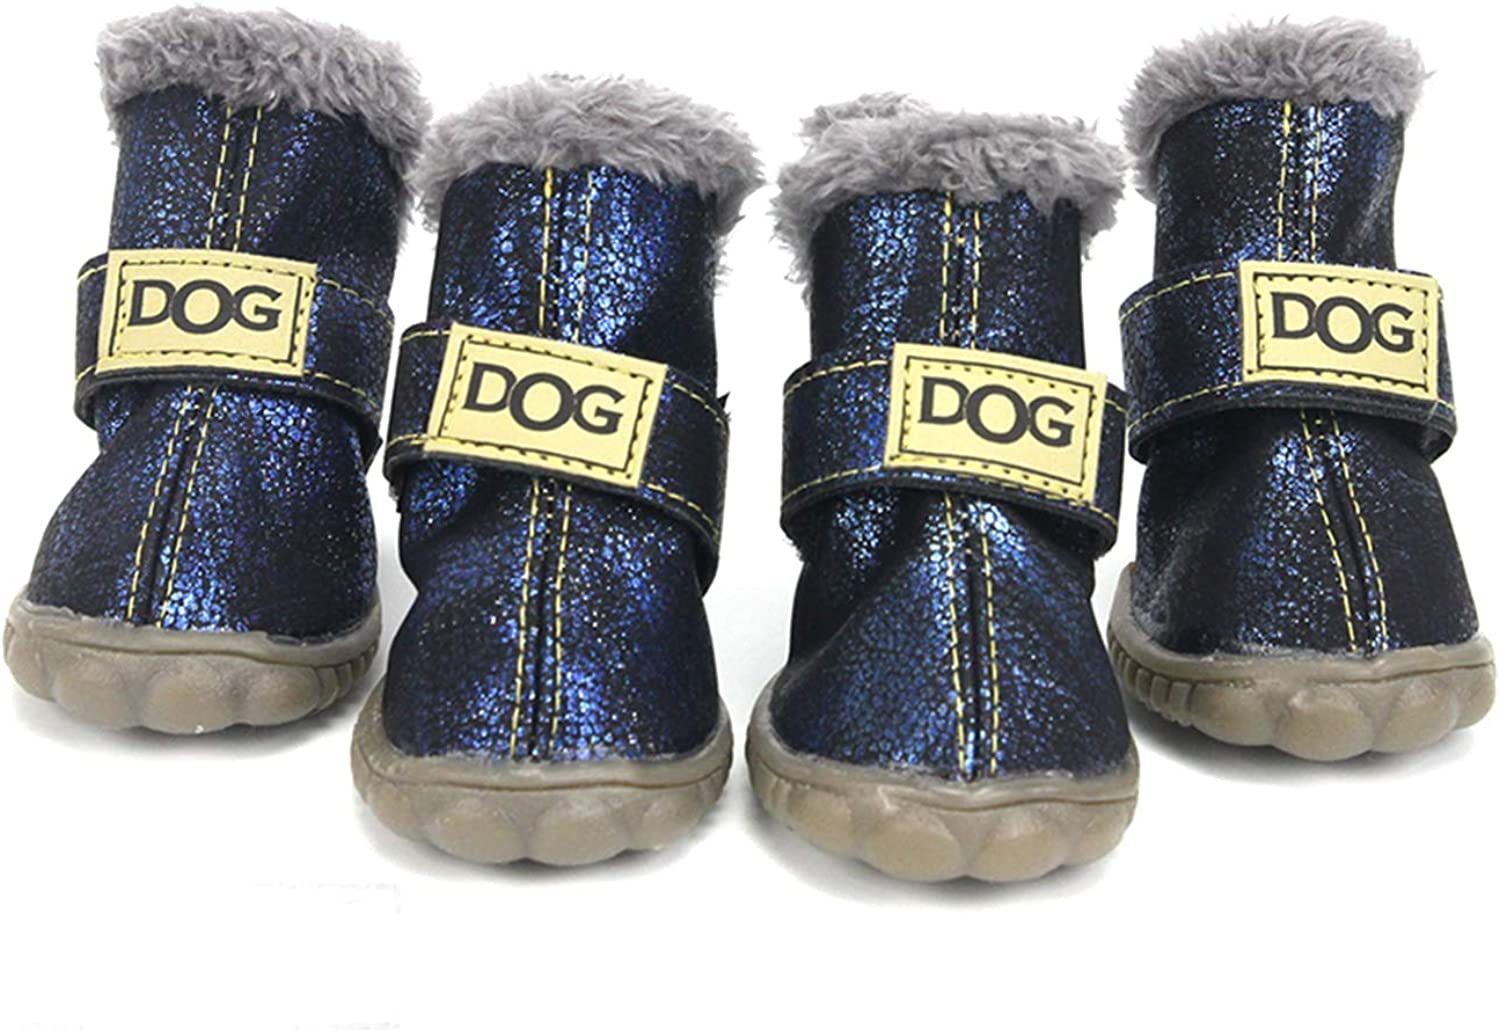 AOBRITON Winter Pet Dog shoes Waterproof 5Pcs Set Small Big Dog's Boots Cotton Non Slip for Pet Product